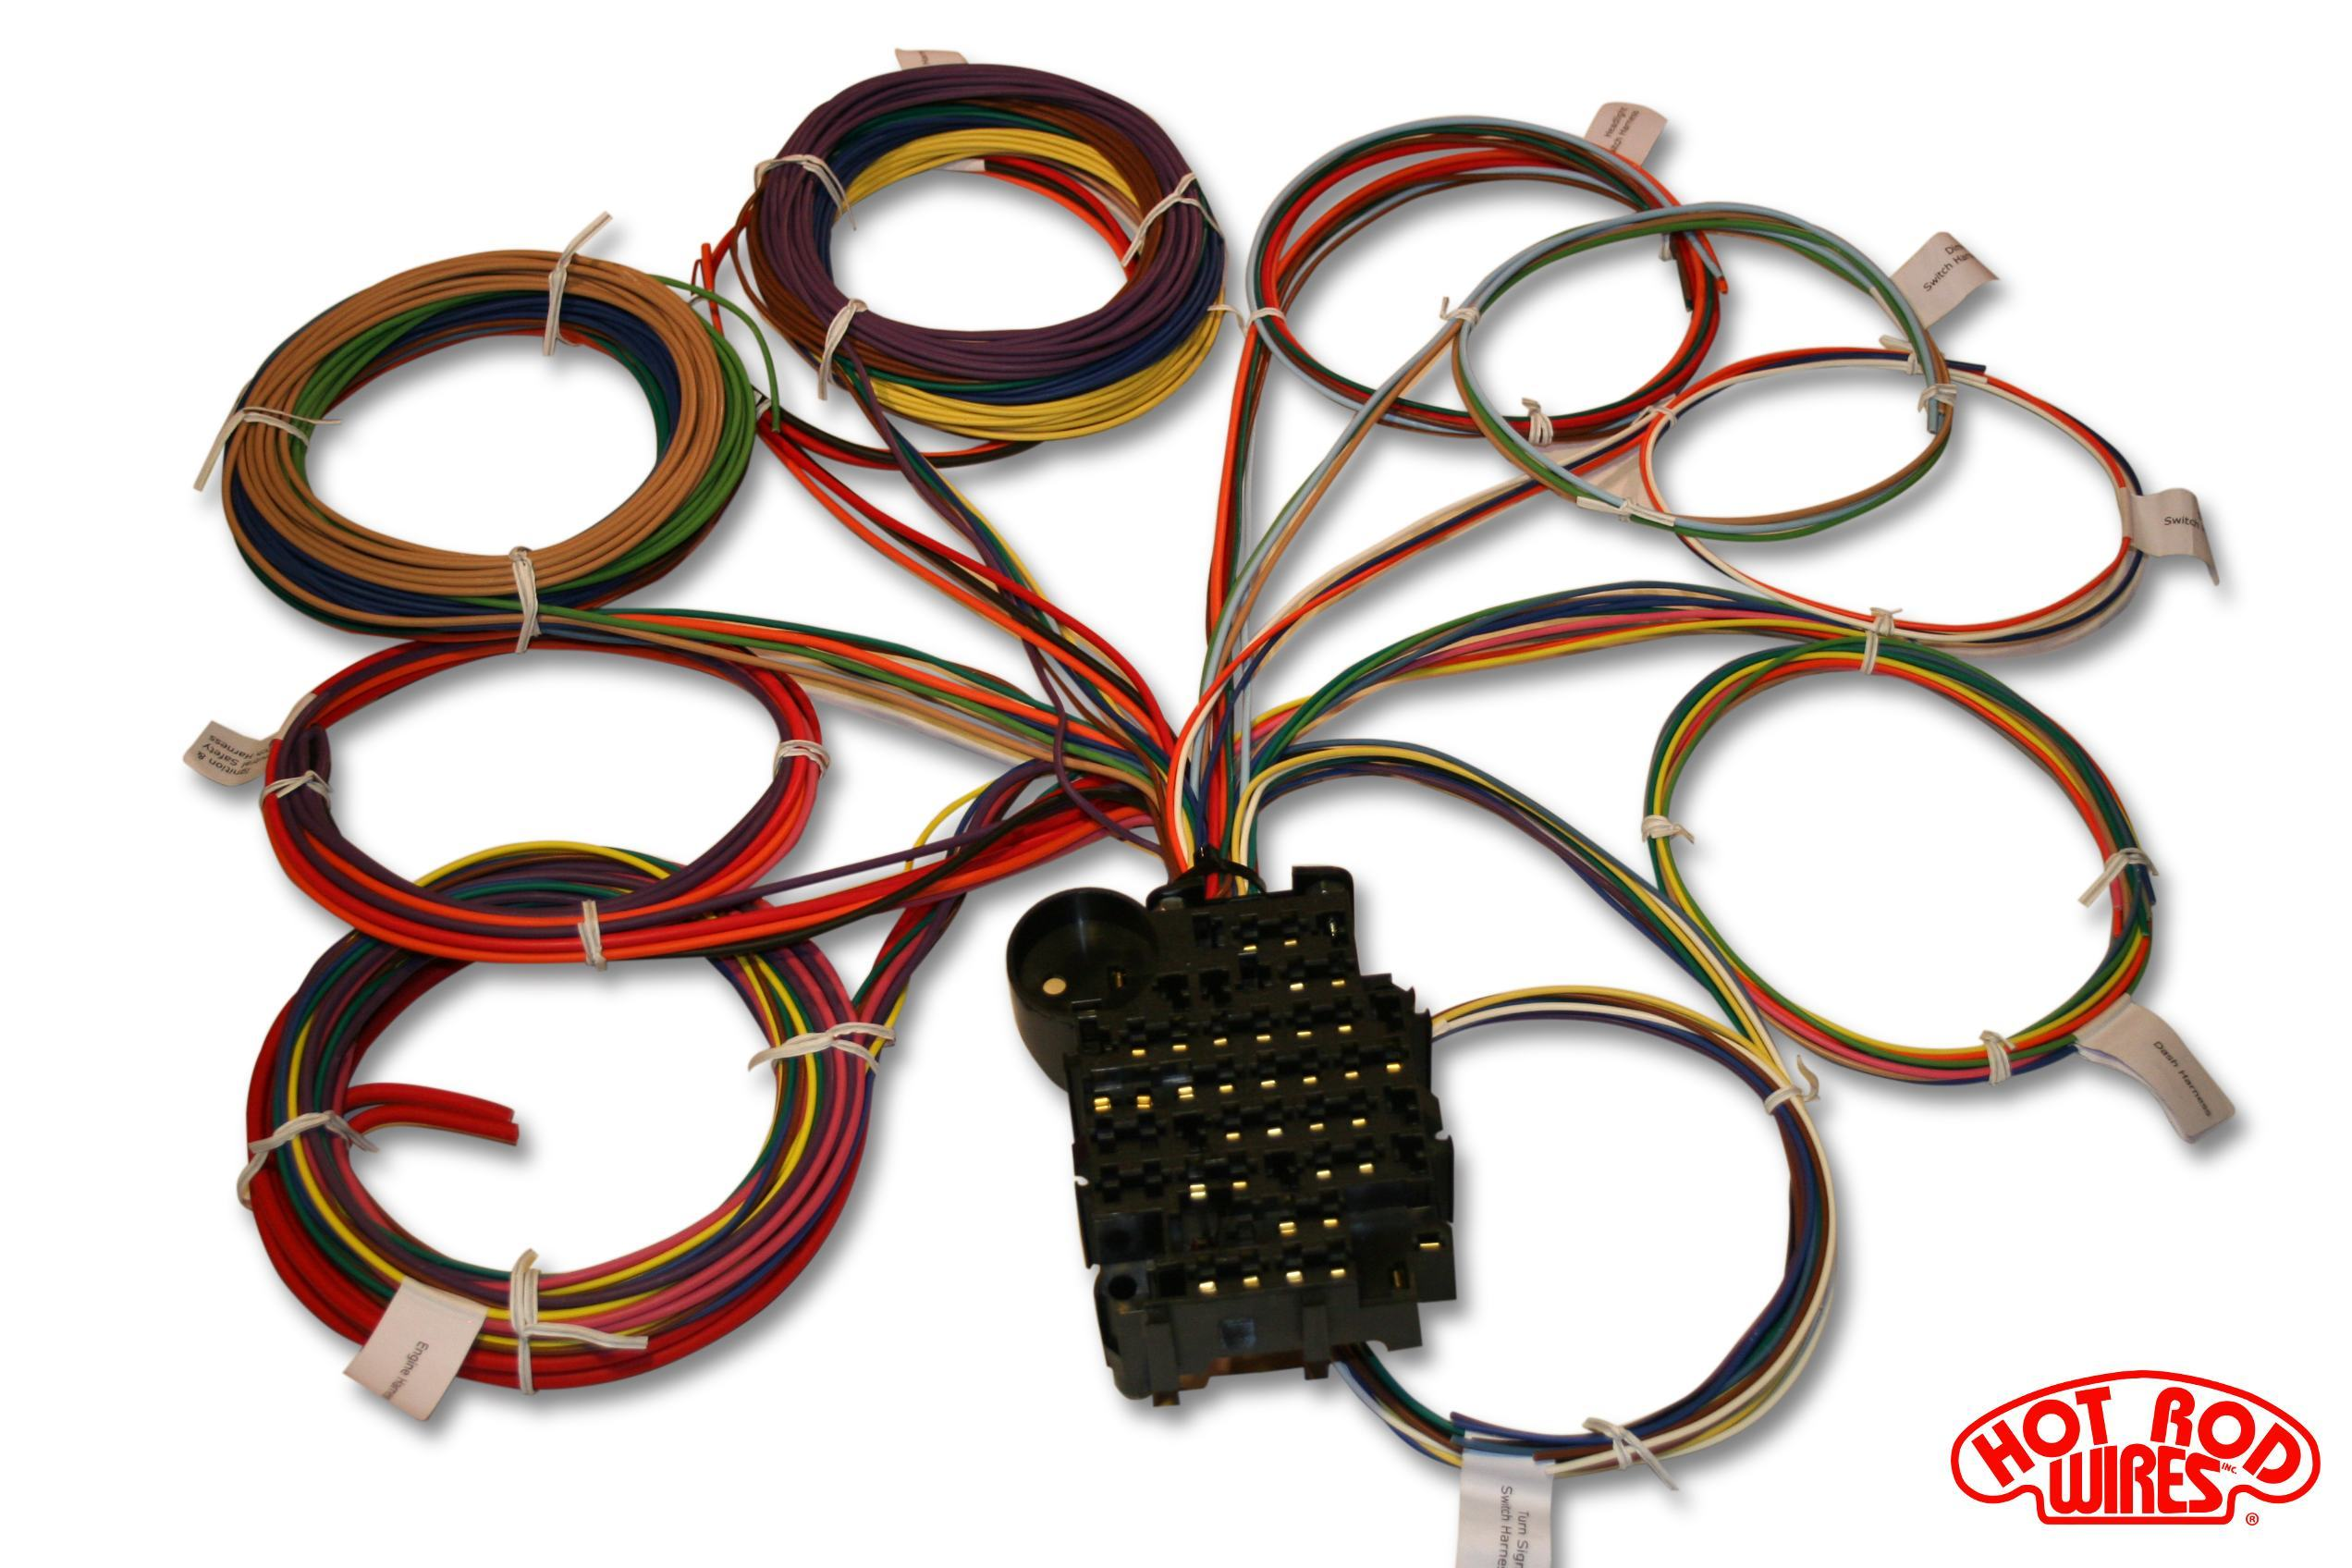 18 circuit harness overhead universal 18 circuit auto wiring harness hotrodwires com universal wiring harness hot rod at readyjetset.co